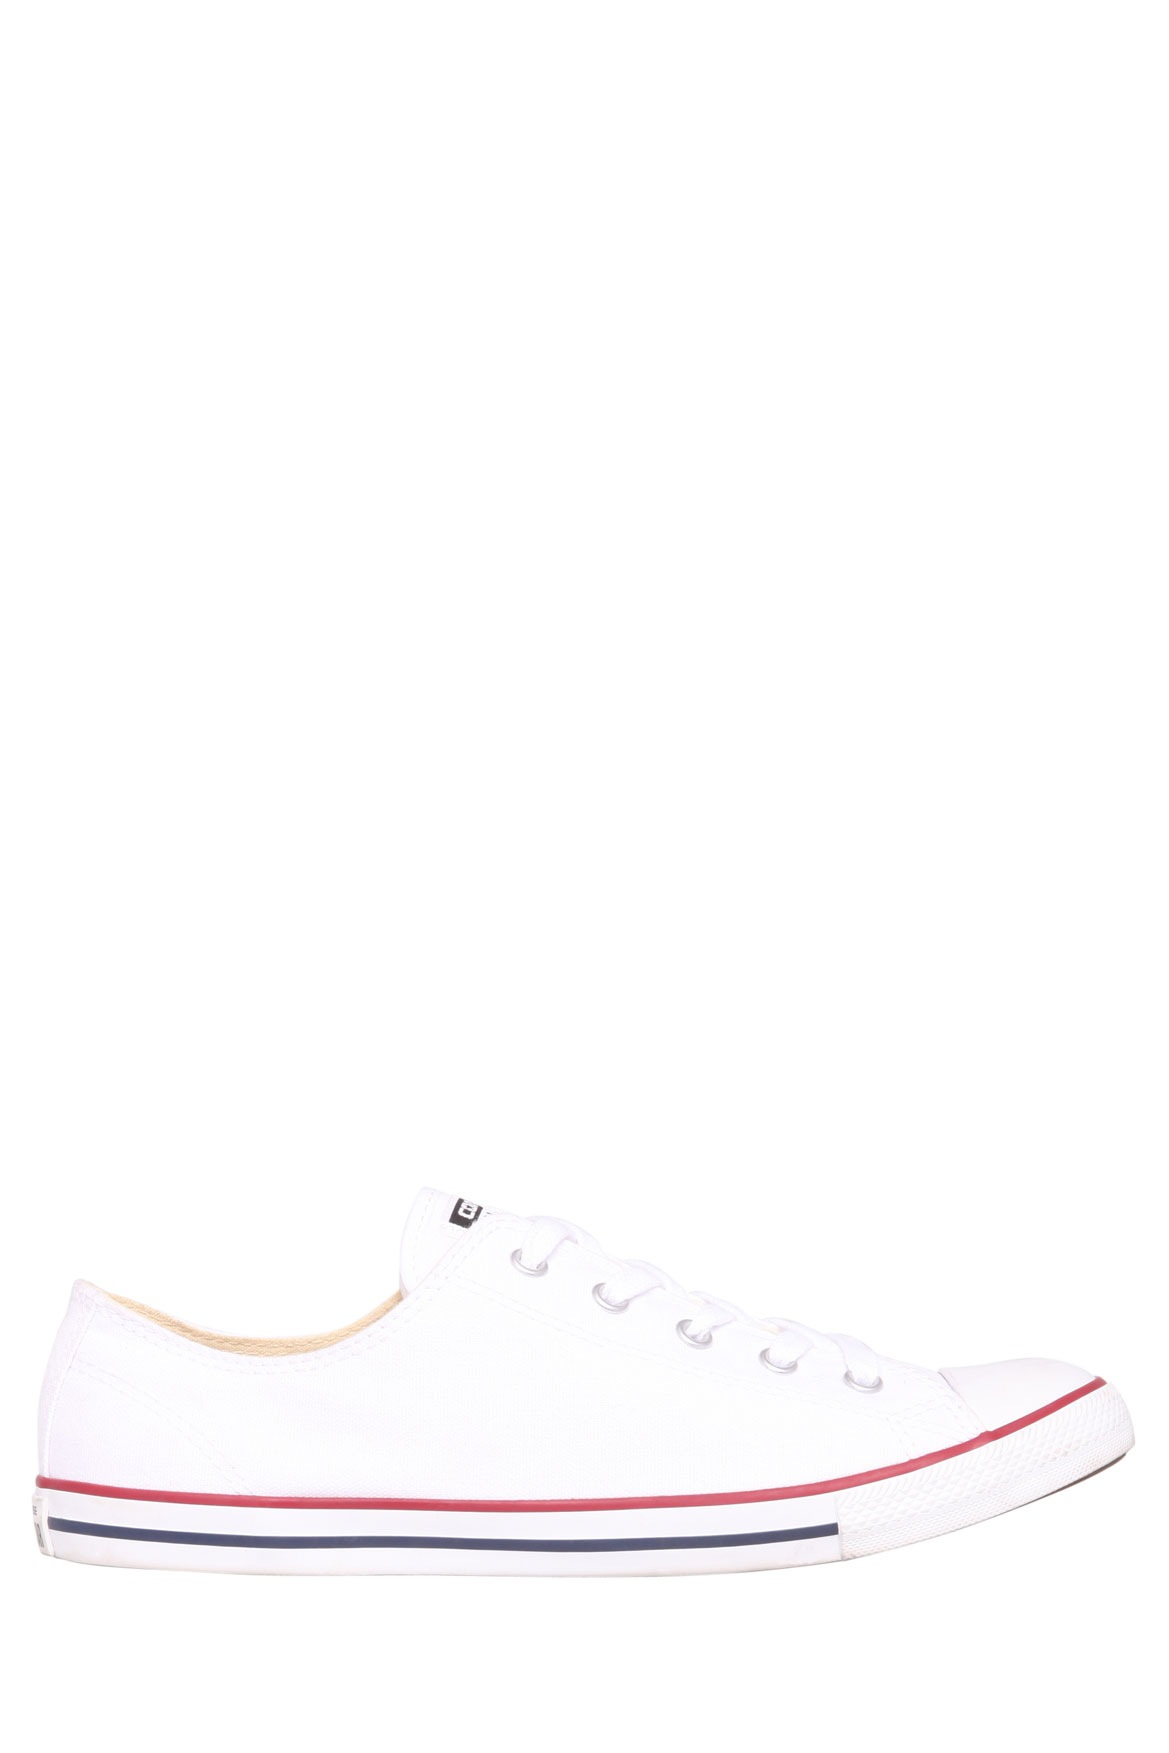 converse chuck taylor all star dainty ox sneaker